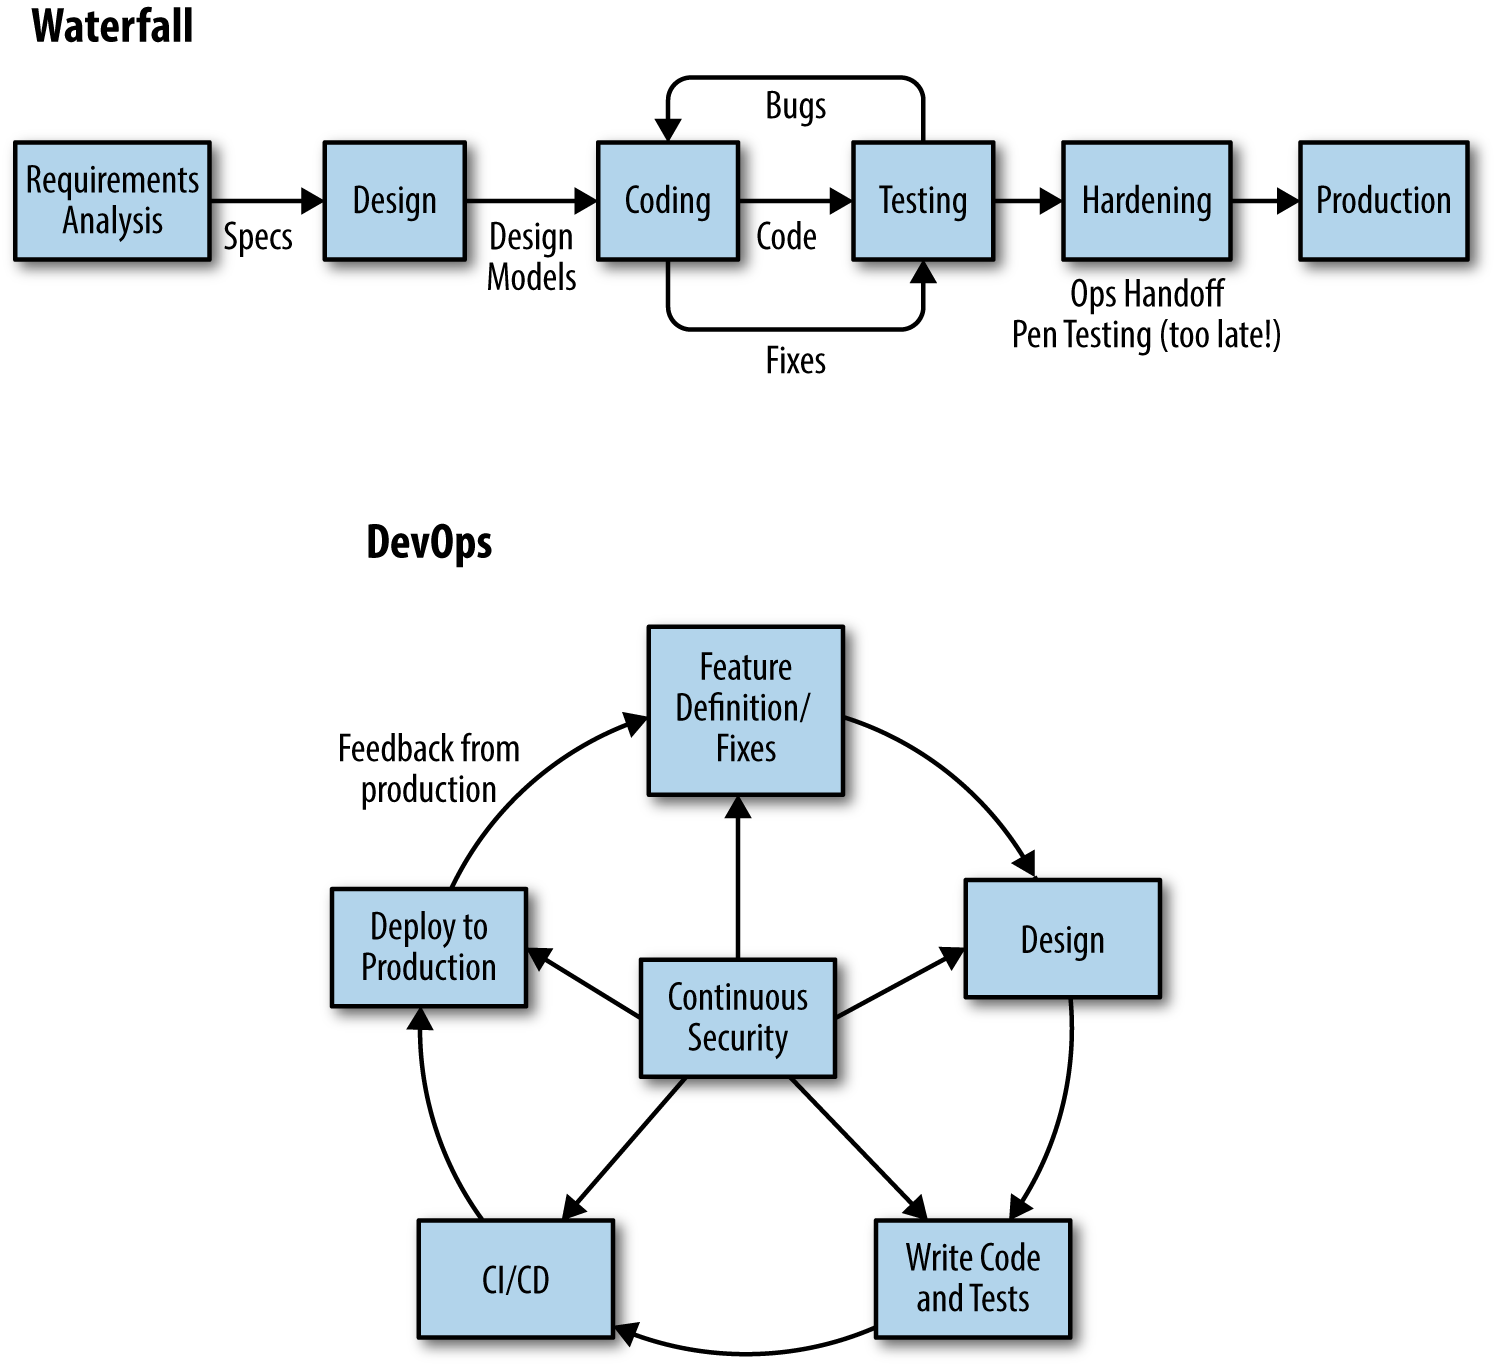 Waterfall and DevOps cycle